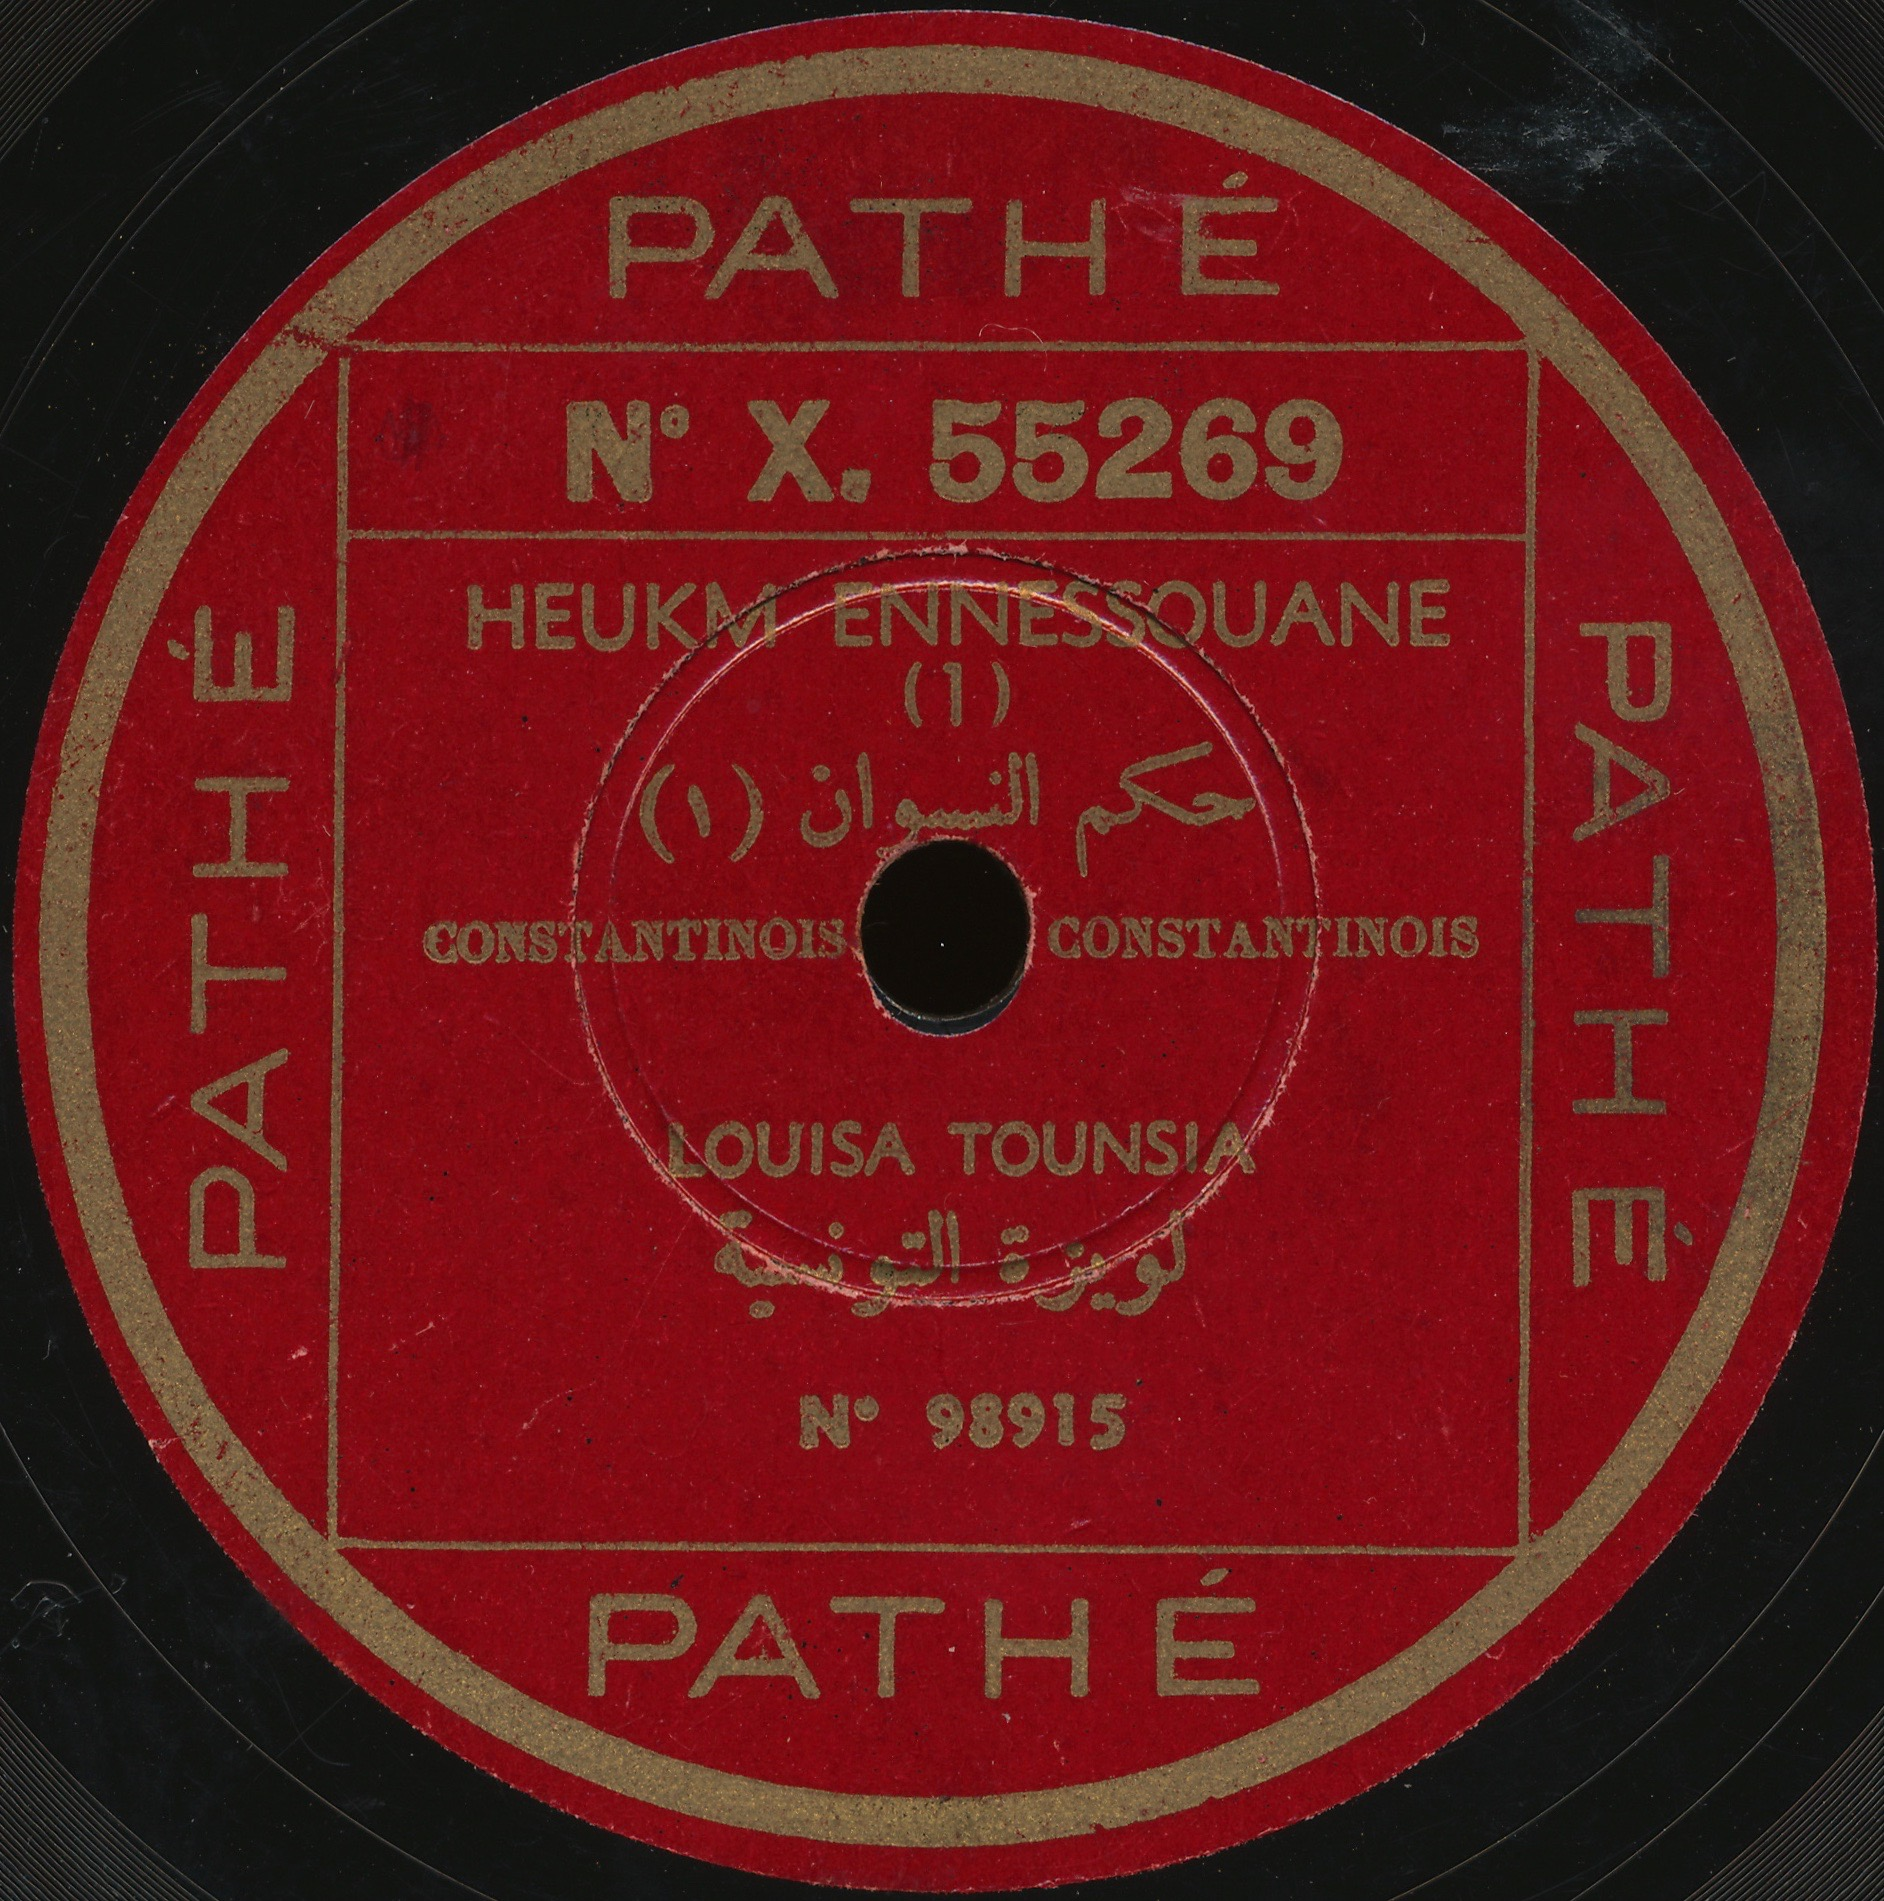 Dating pathe records label